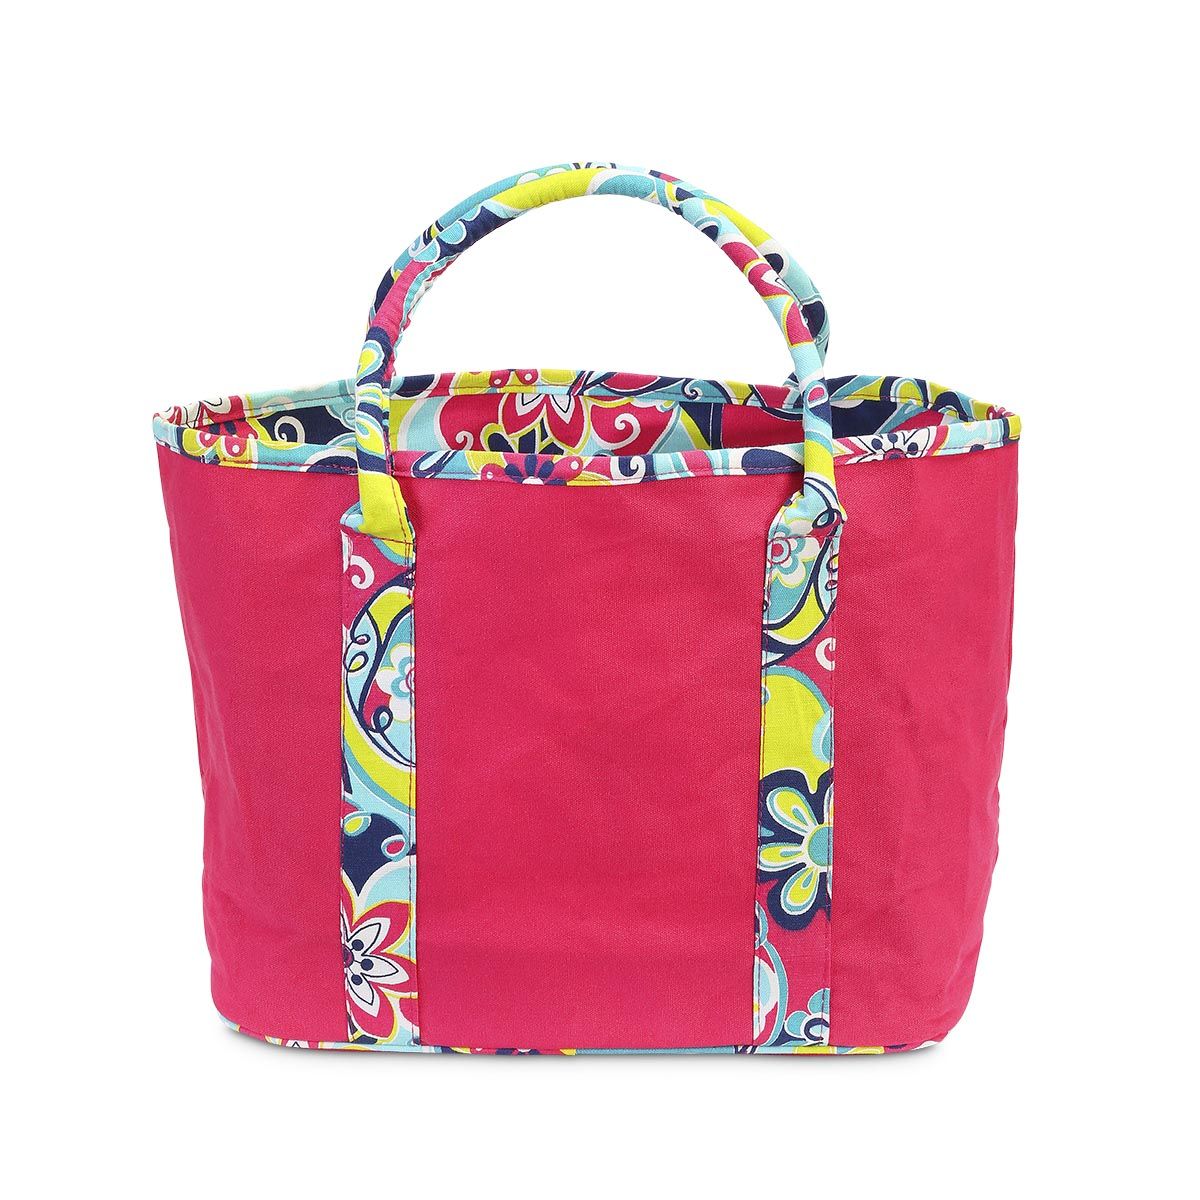 whimzee traveler tote